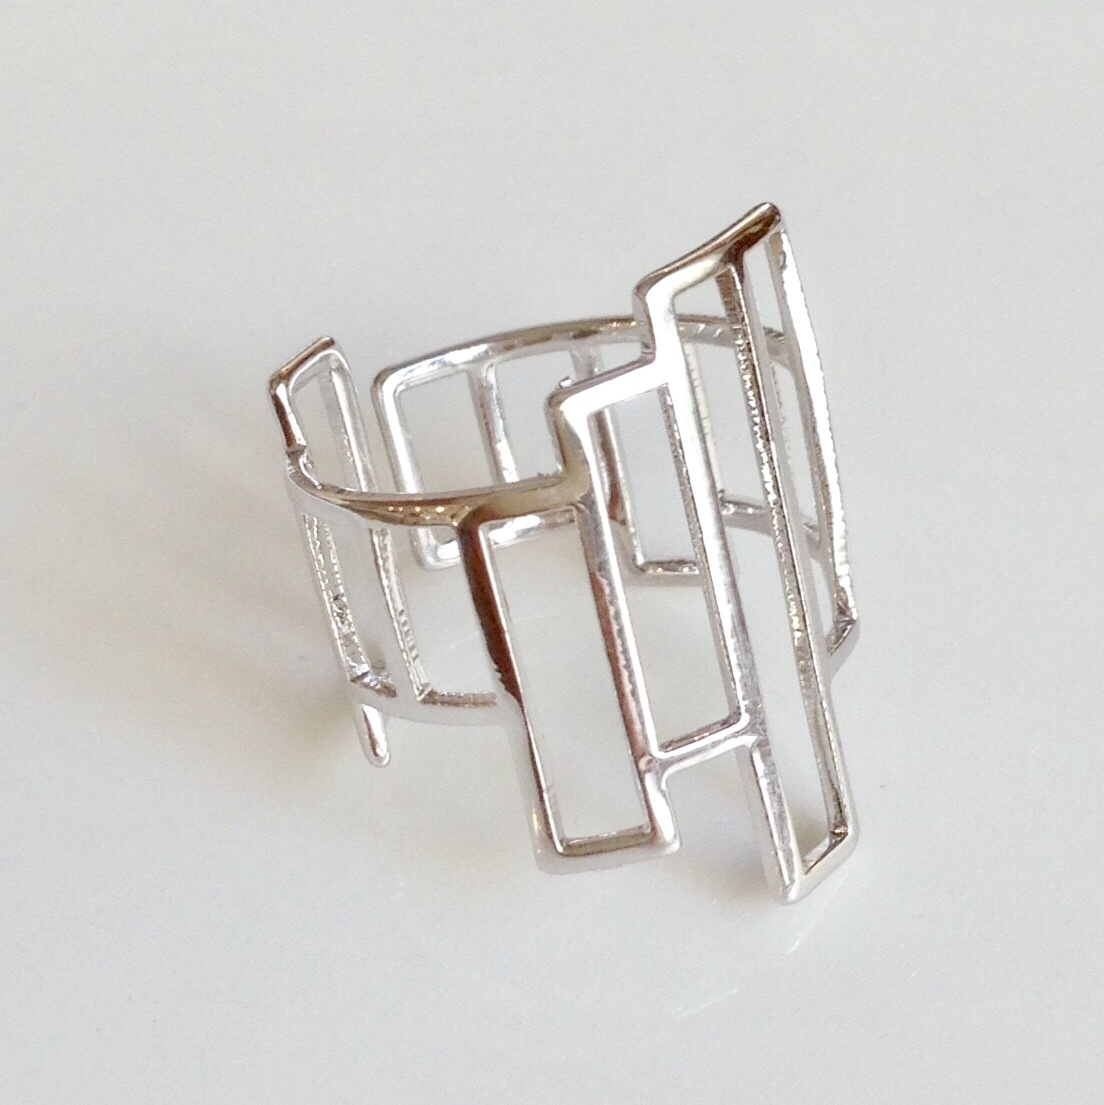 【 UNSEABLE 】Square ring